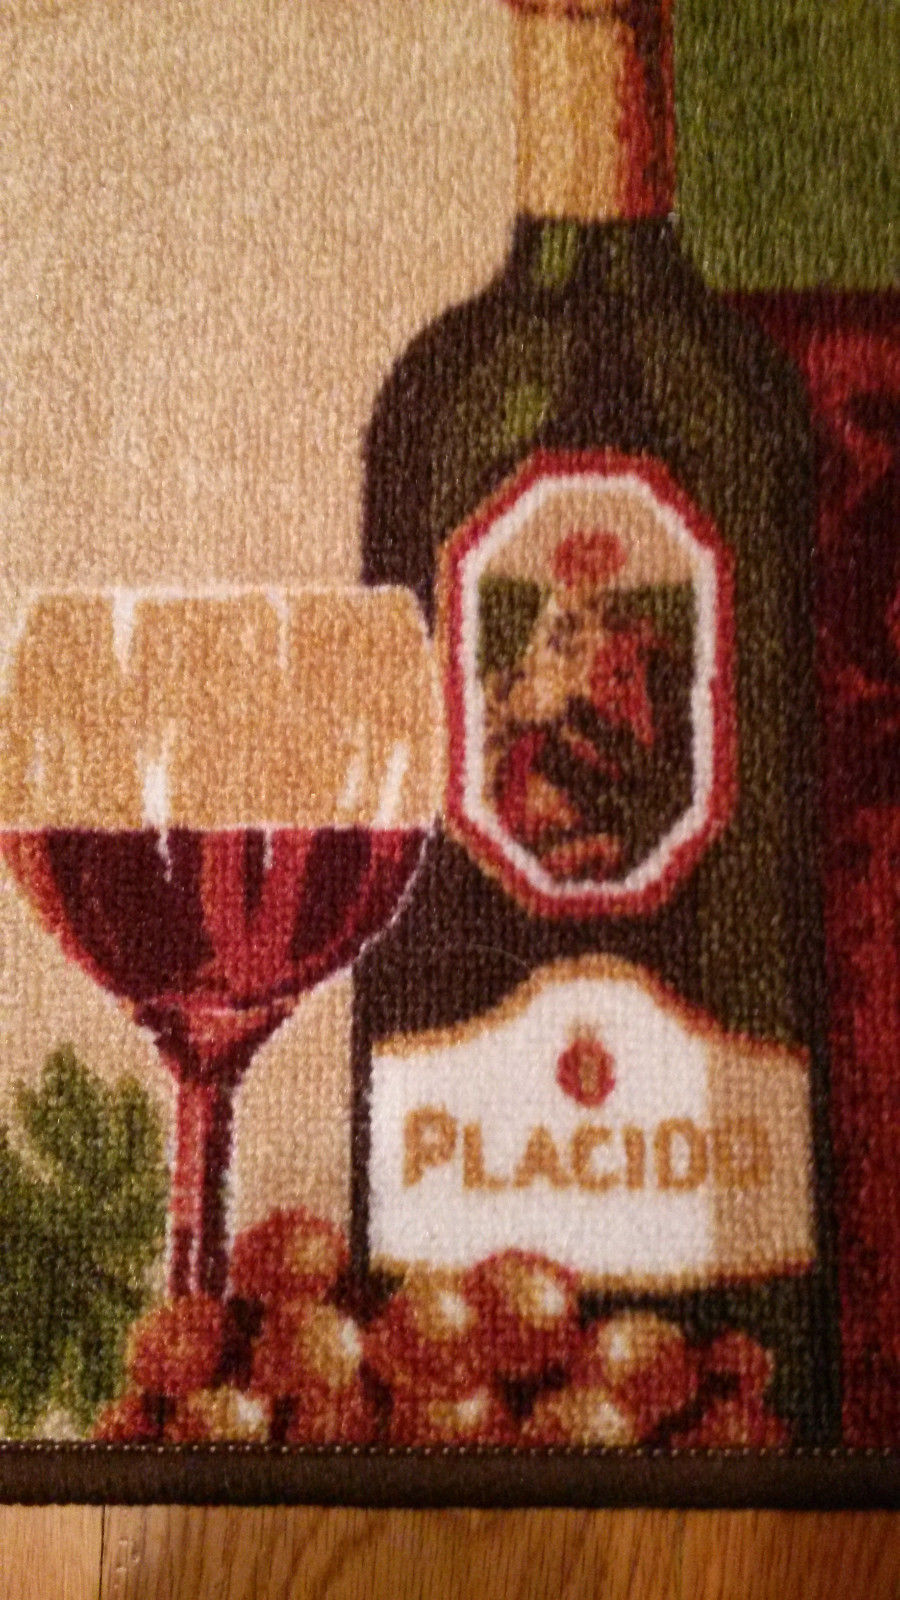 TUSCAN KITCHEN RUG Floor Mat Wine Grapes Green Red 18x30 image 2